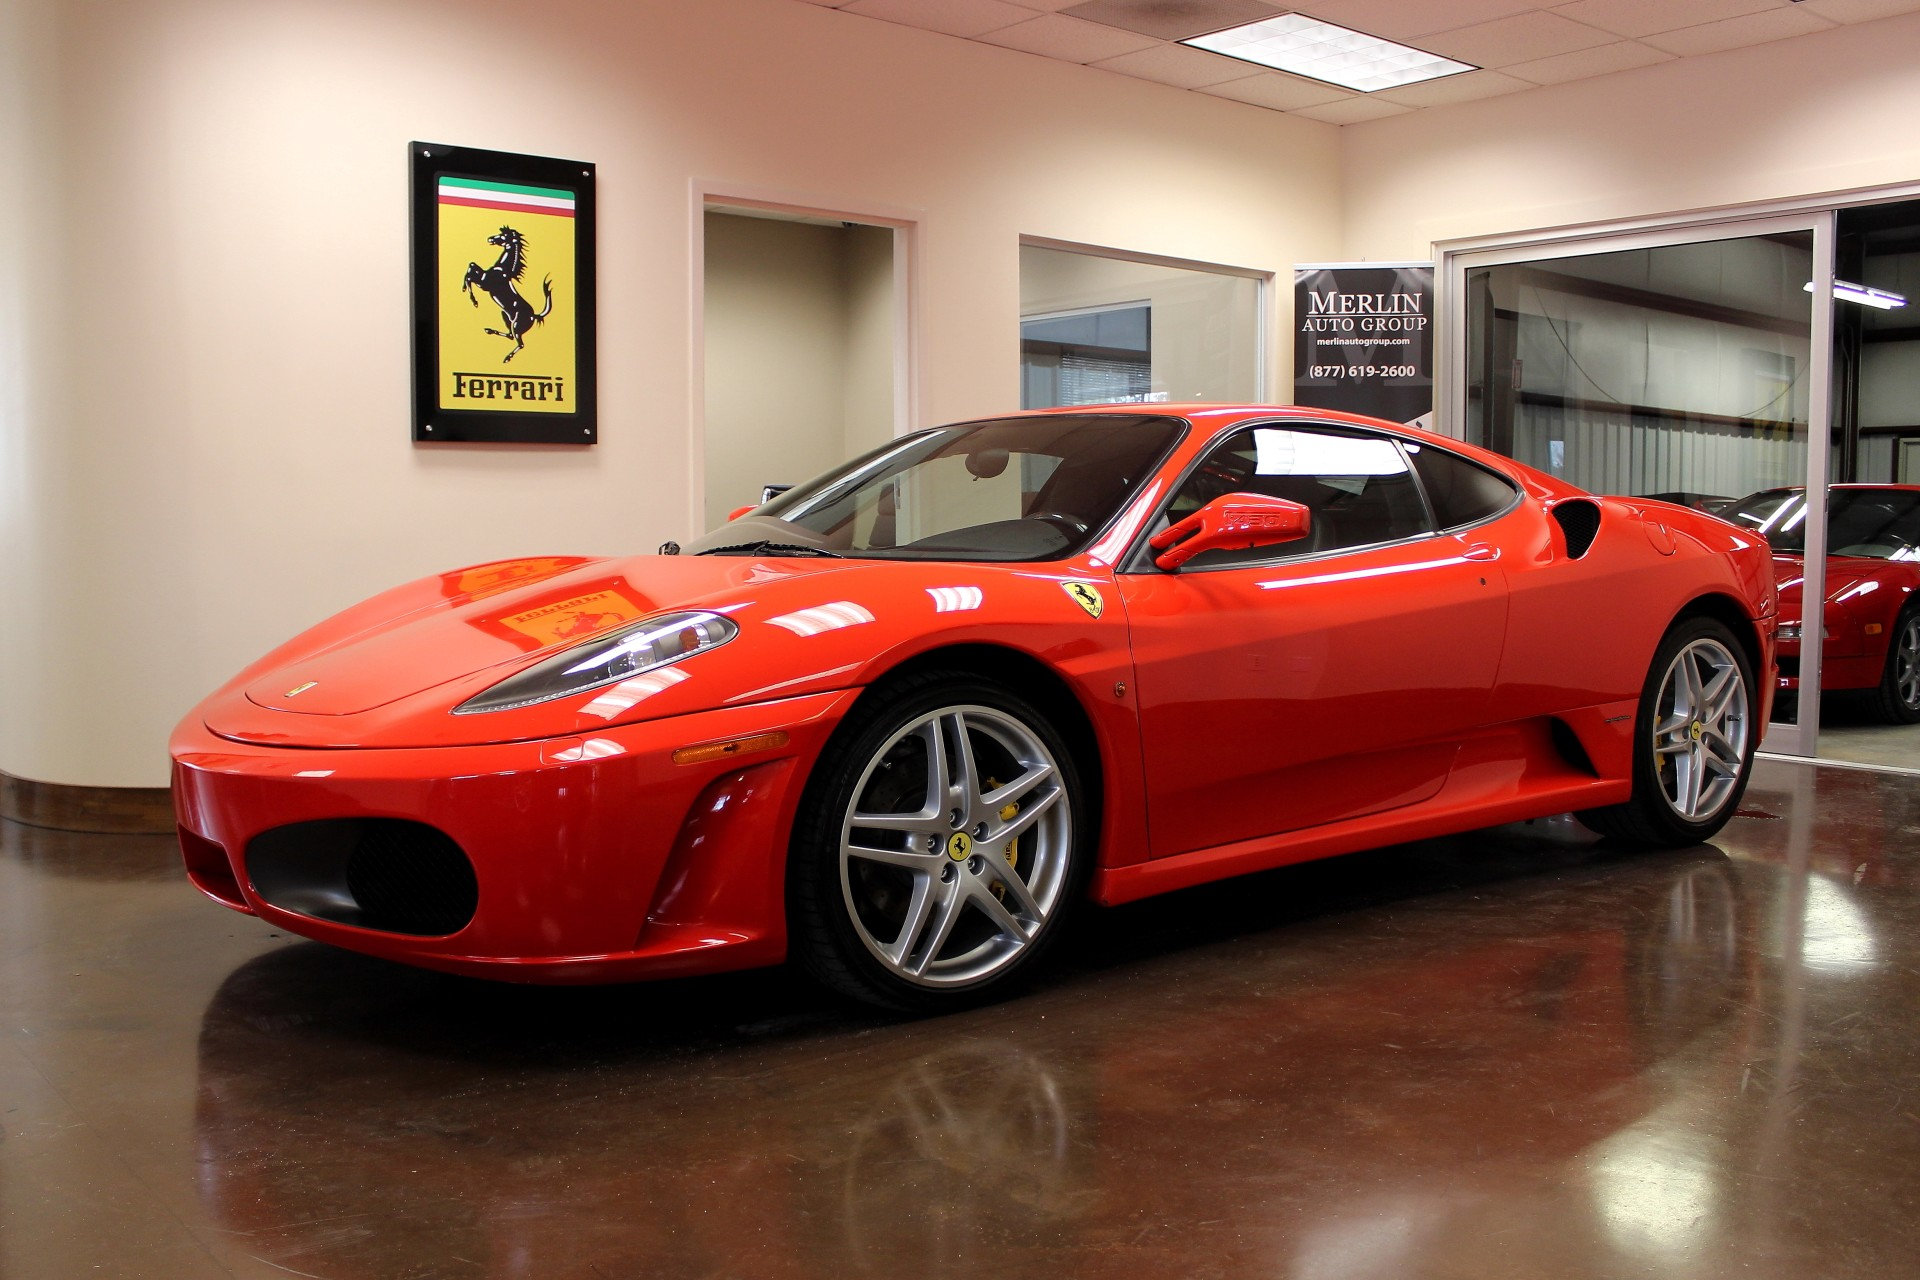 Used 2005 Ferrari F430 Stock P2974 Ultra Luxury Car From